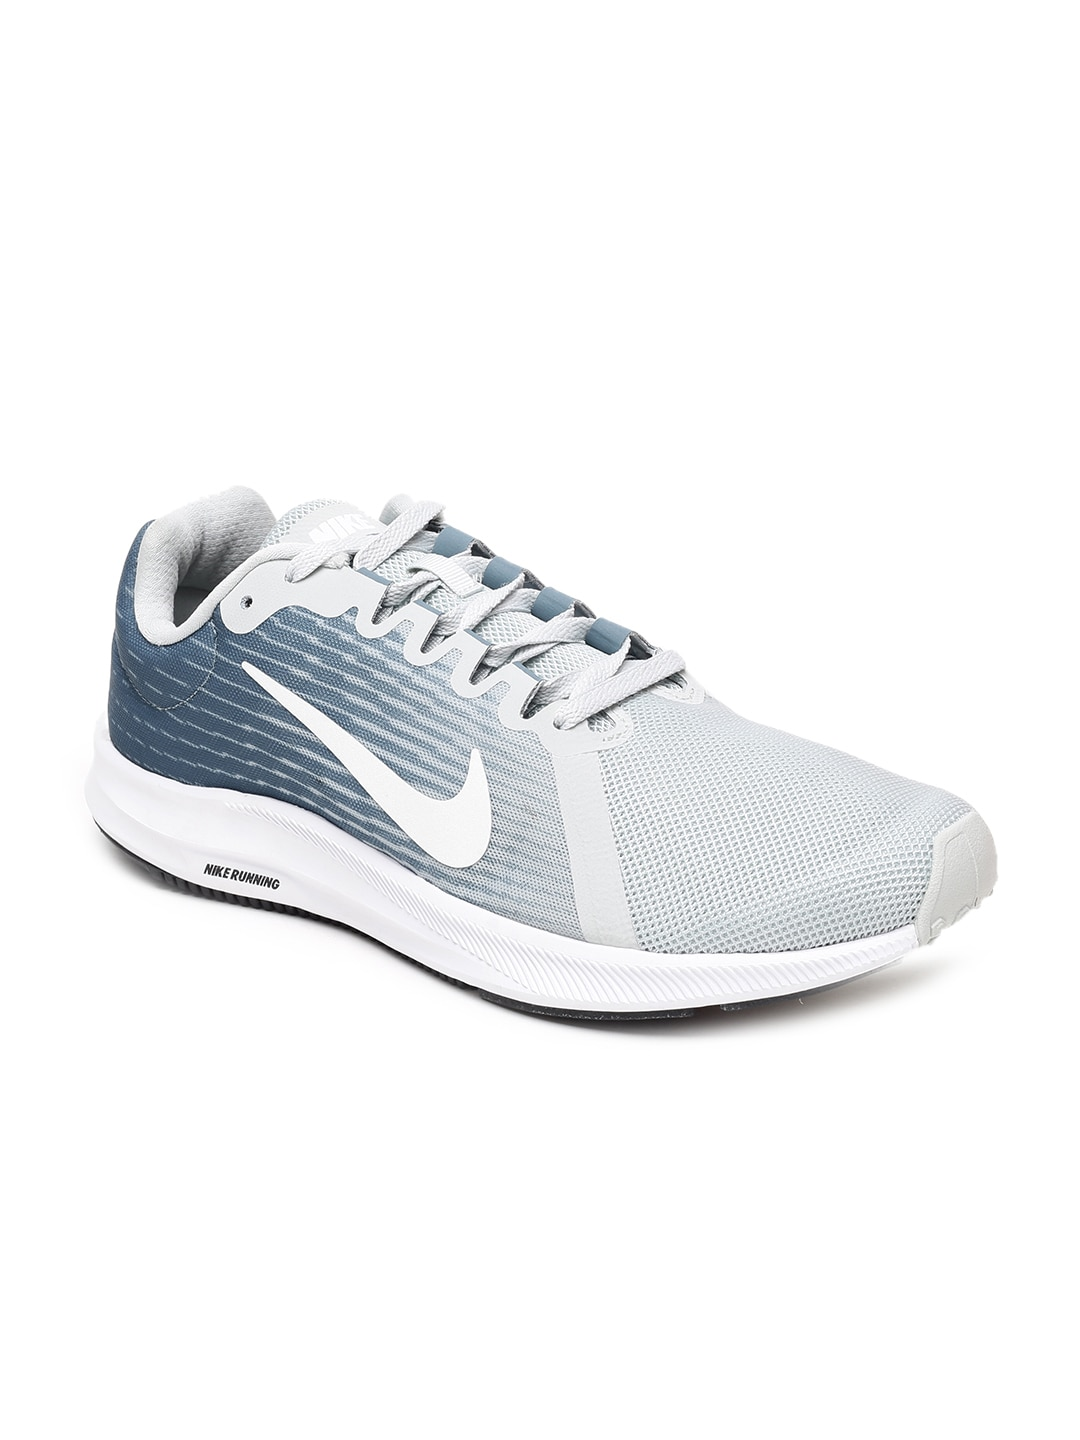 size 40 7da49 66c72 Nike - Shop for Nike Apparels Online in India   Myntra